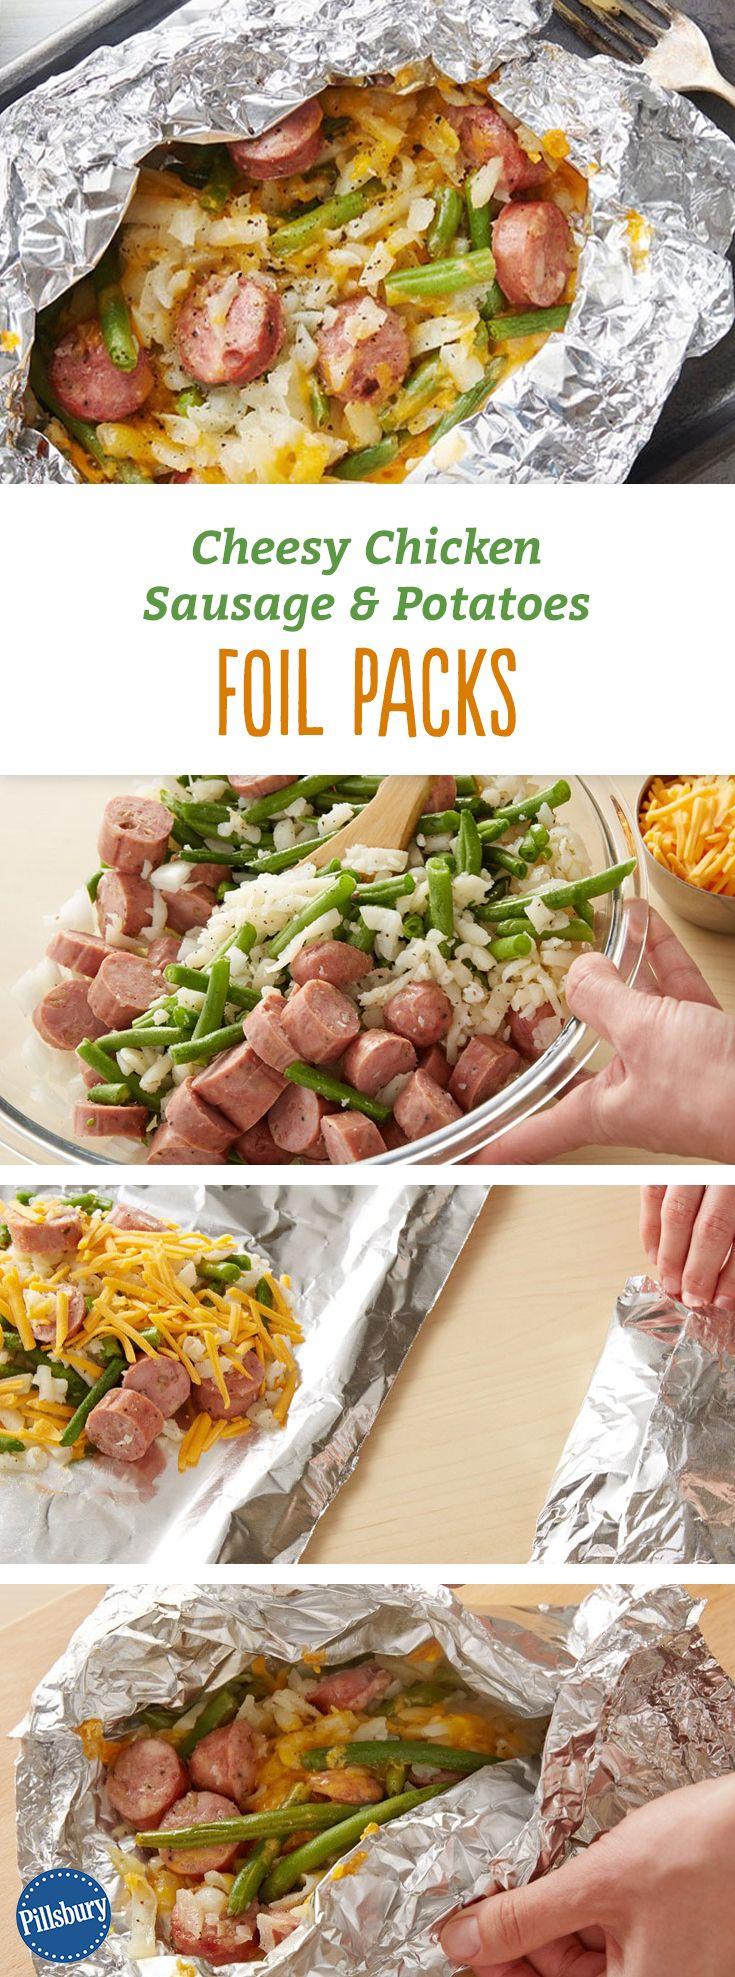 These foil packs loaded with chicken-apple sausage, potatoes and green beans are sure to become a summertime family favorite.